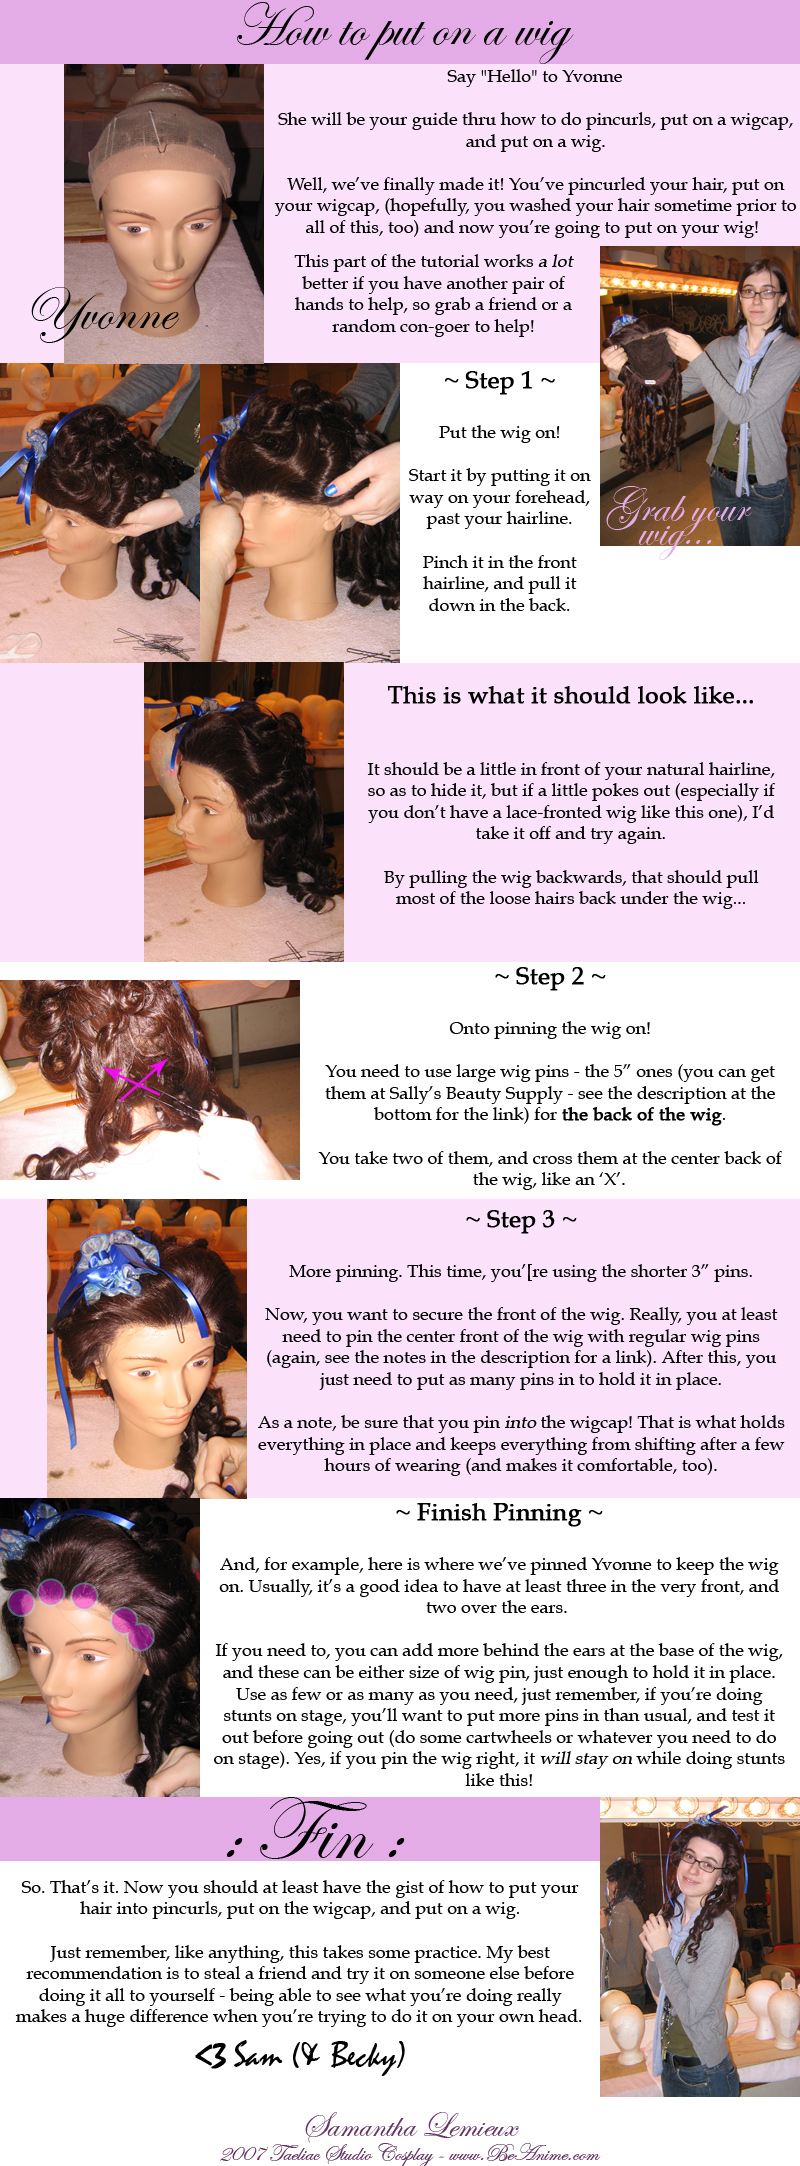 Tutorial: How to put on a wig by taeliac